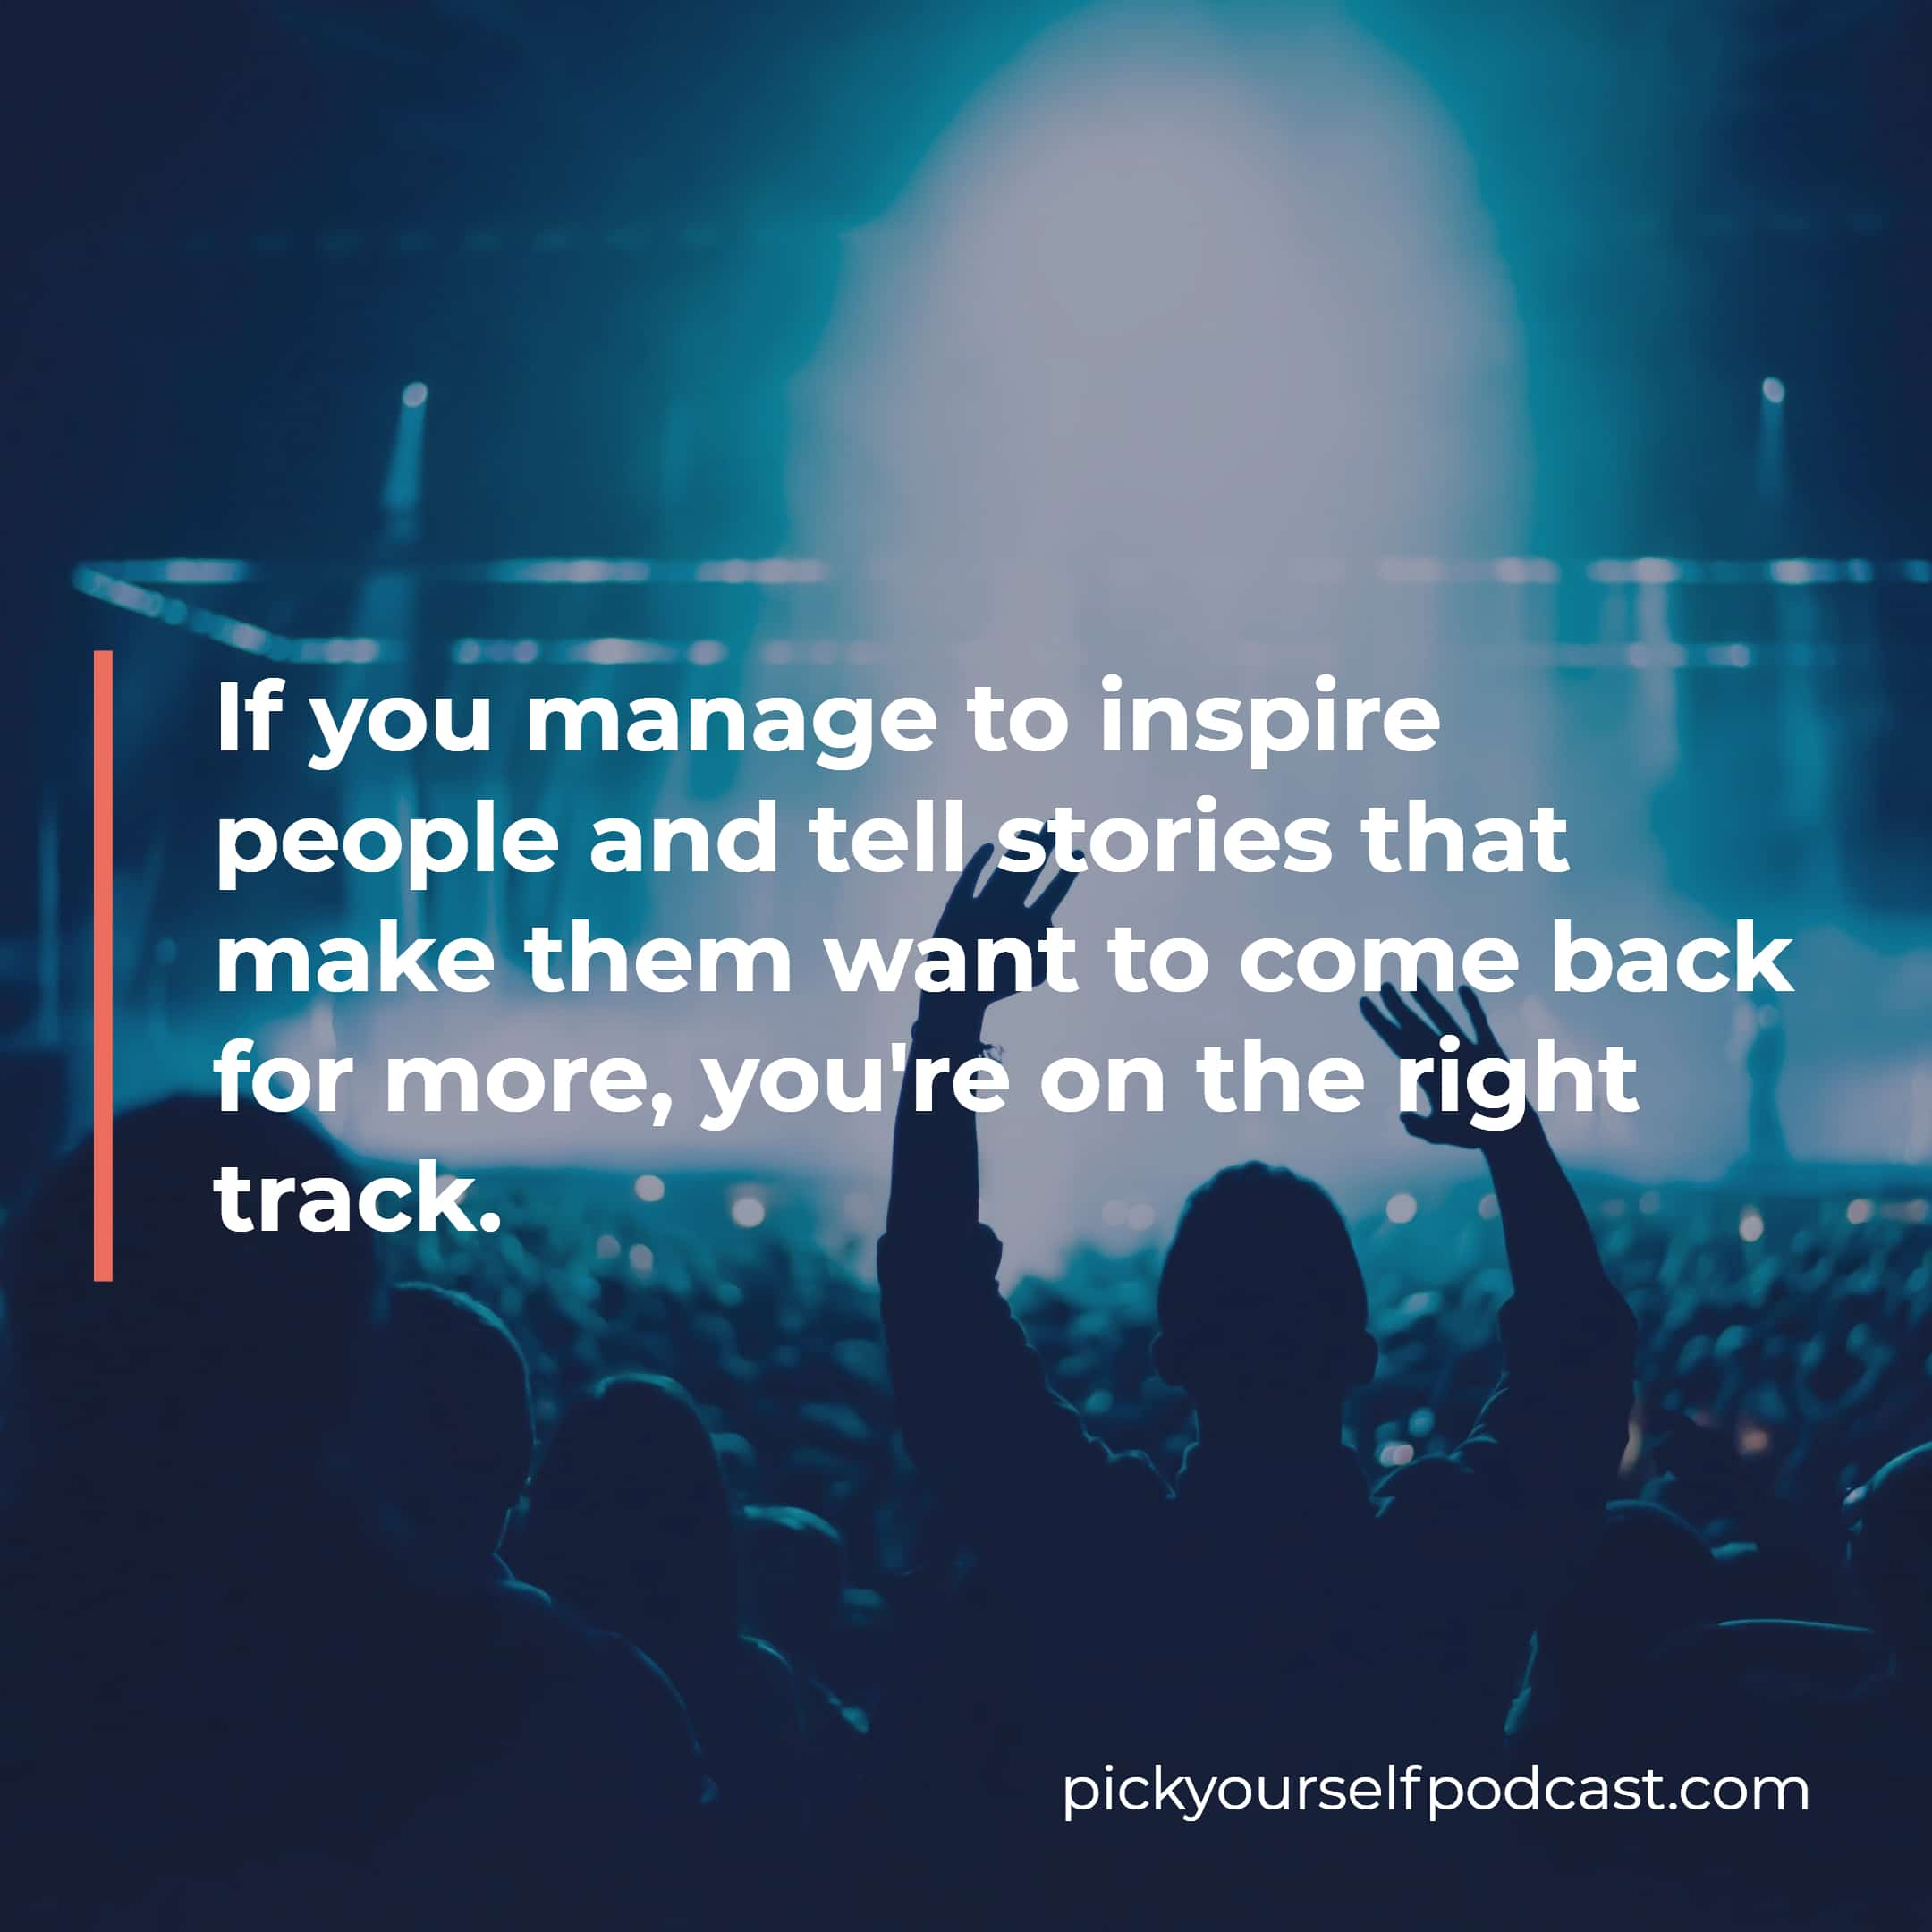 Every good social media strategy for electronic music producers focuses on inspiration and storytelling.